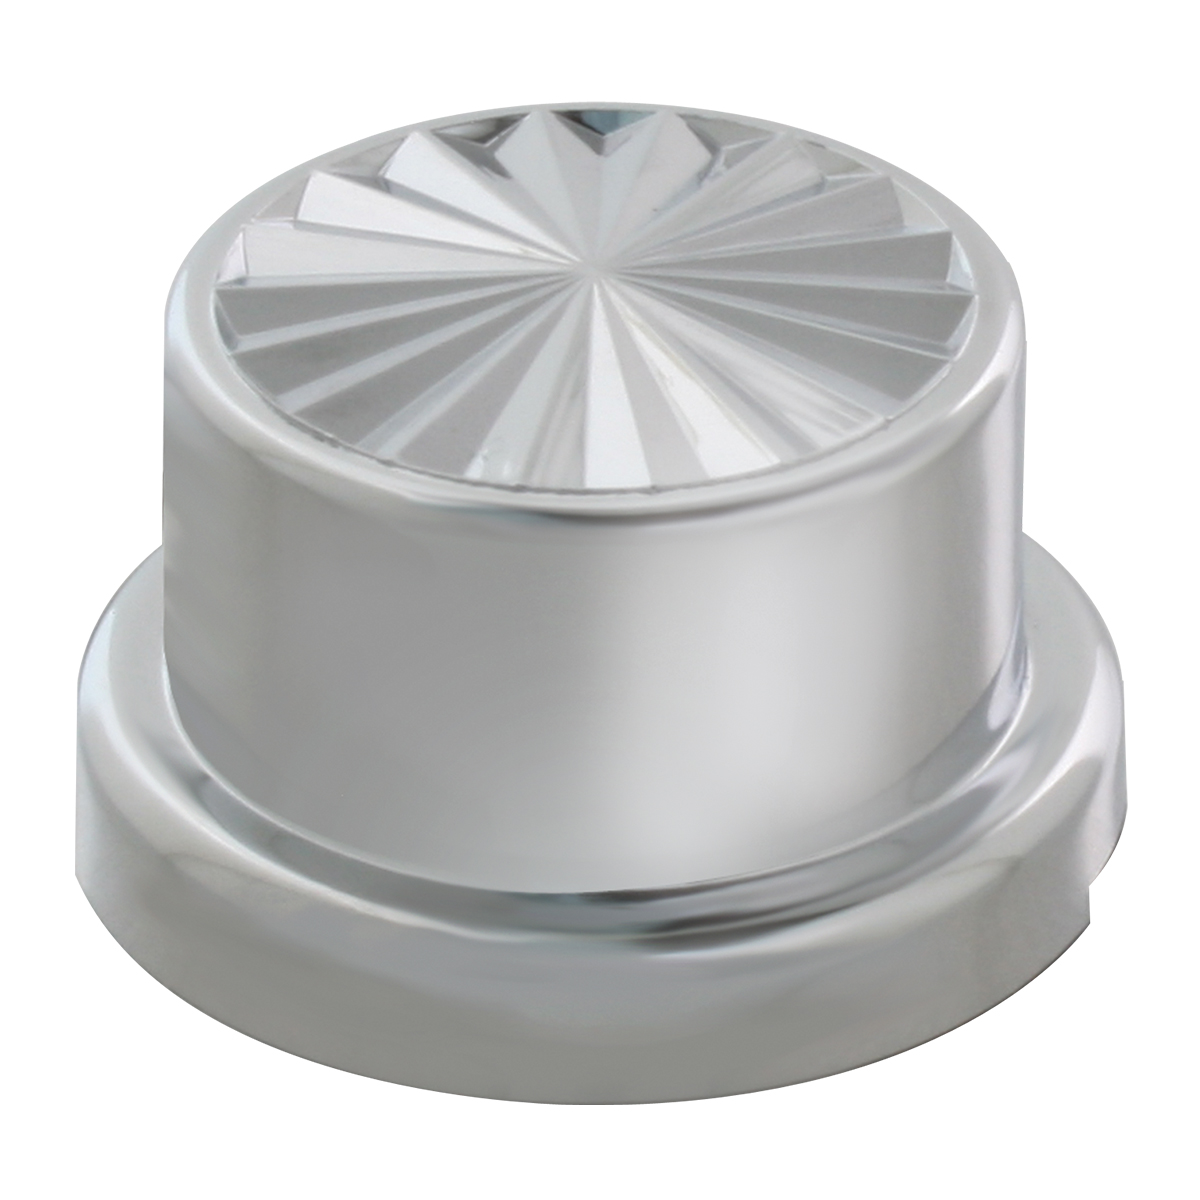 10065 Chrome Plastic Push-On Pinwheel Style Round Lug Nut Cover